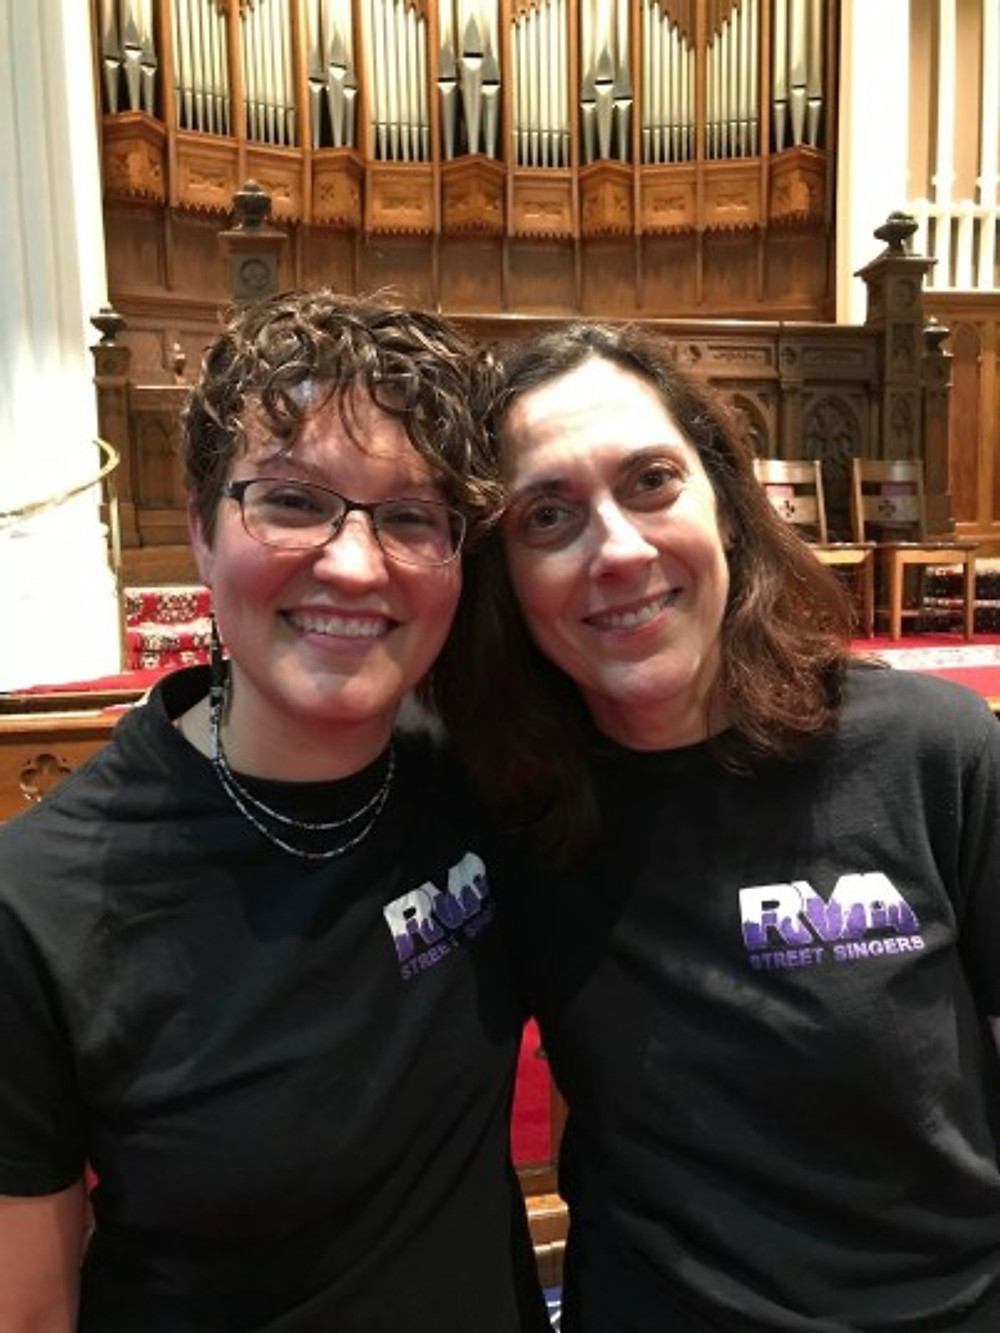 With Robin Rio (right), music therapist and co-leader for the RVA Street Singers.